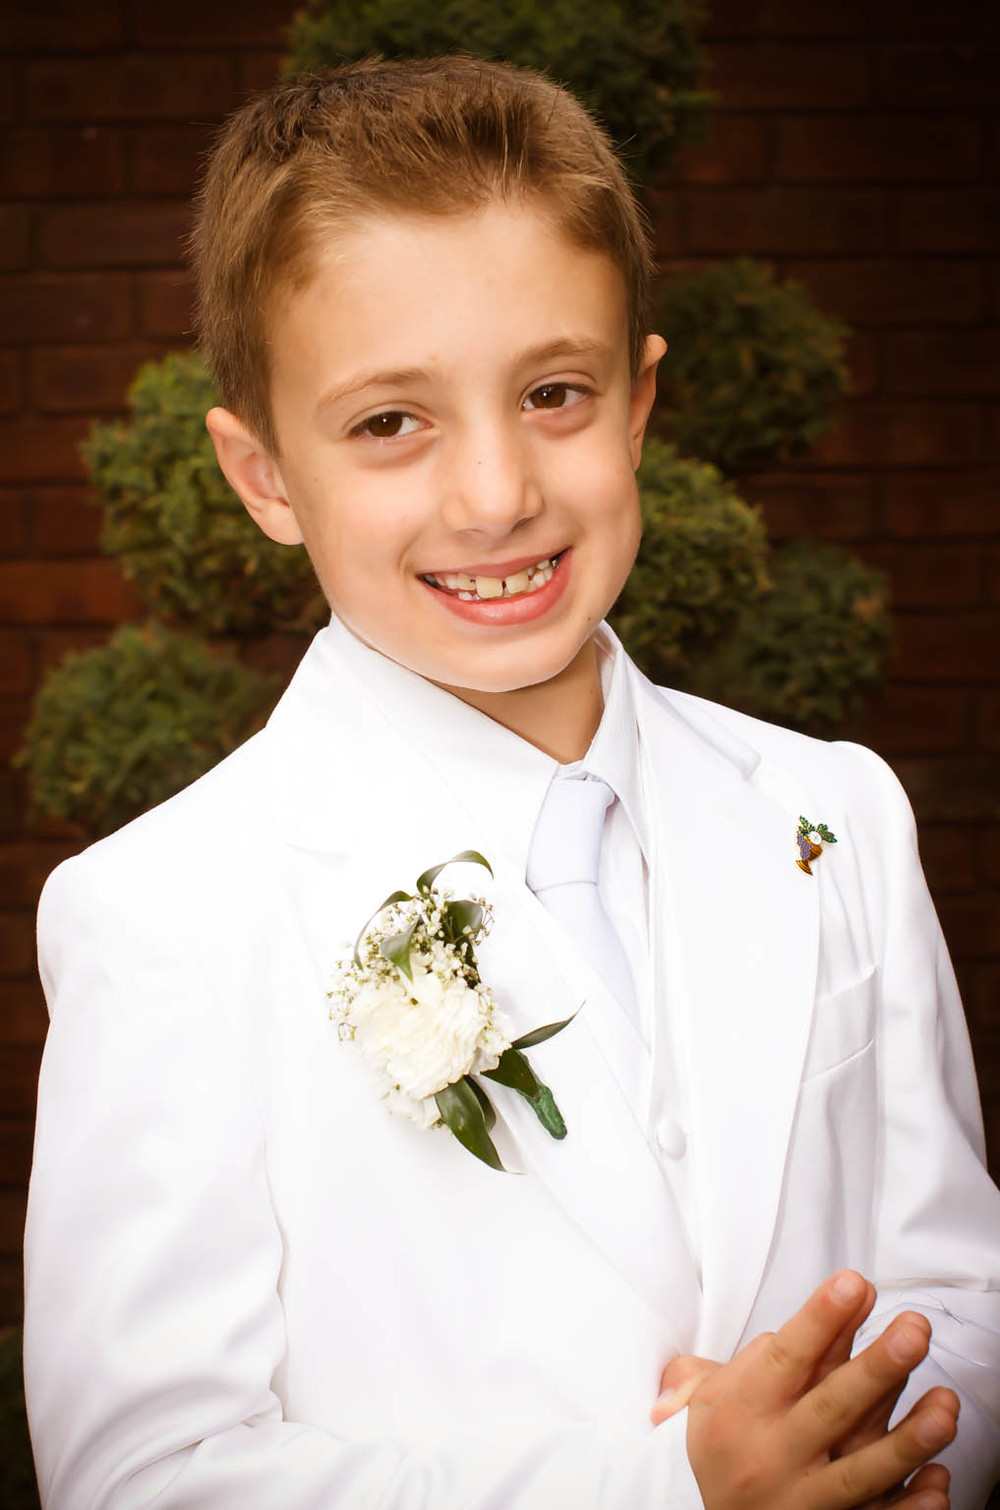 Gabriels_Communion_2014-5.jpg